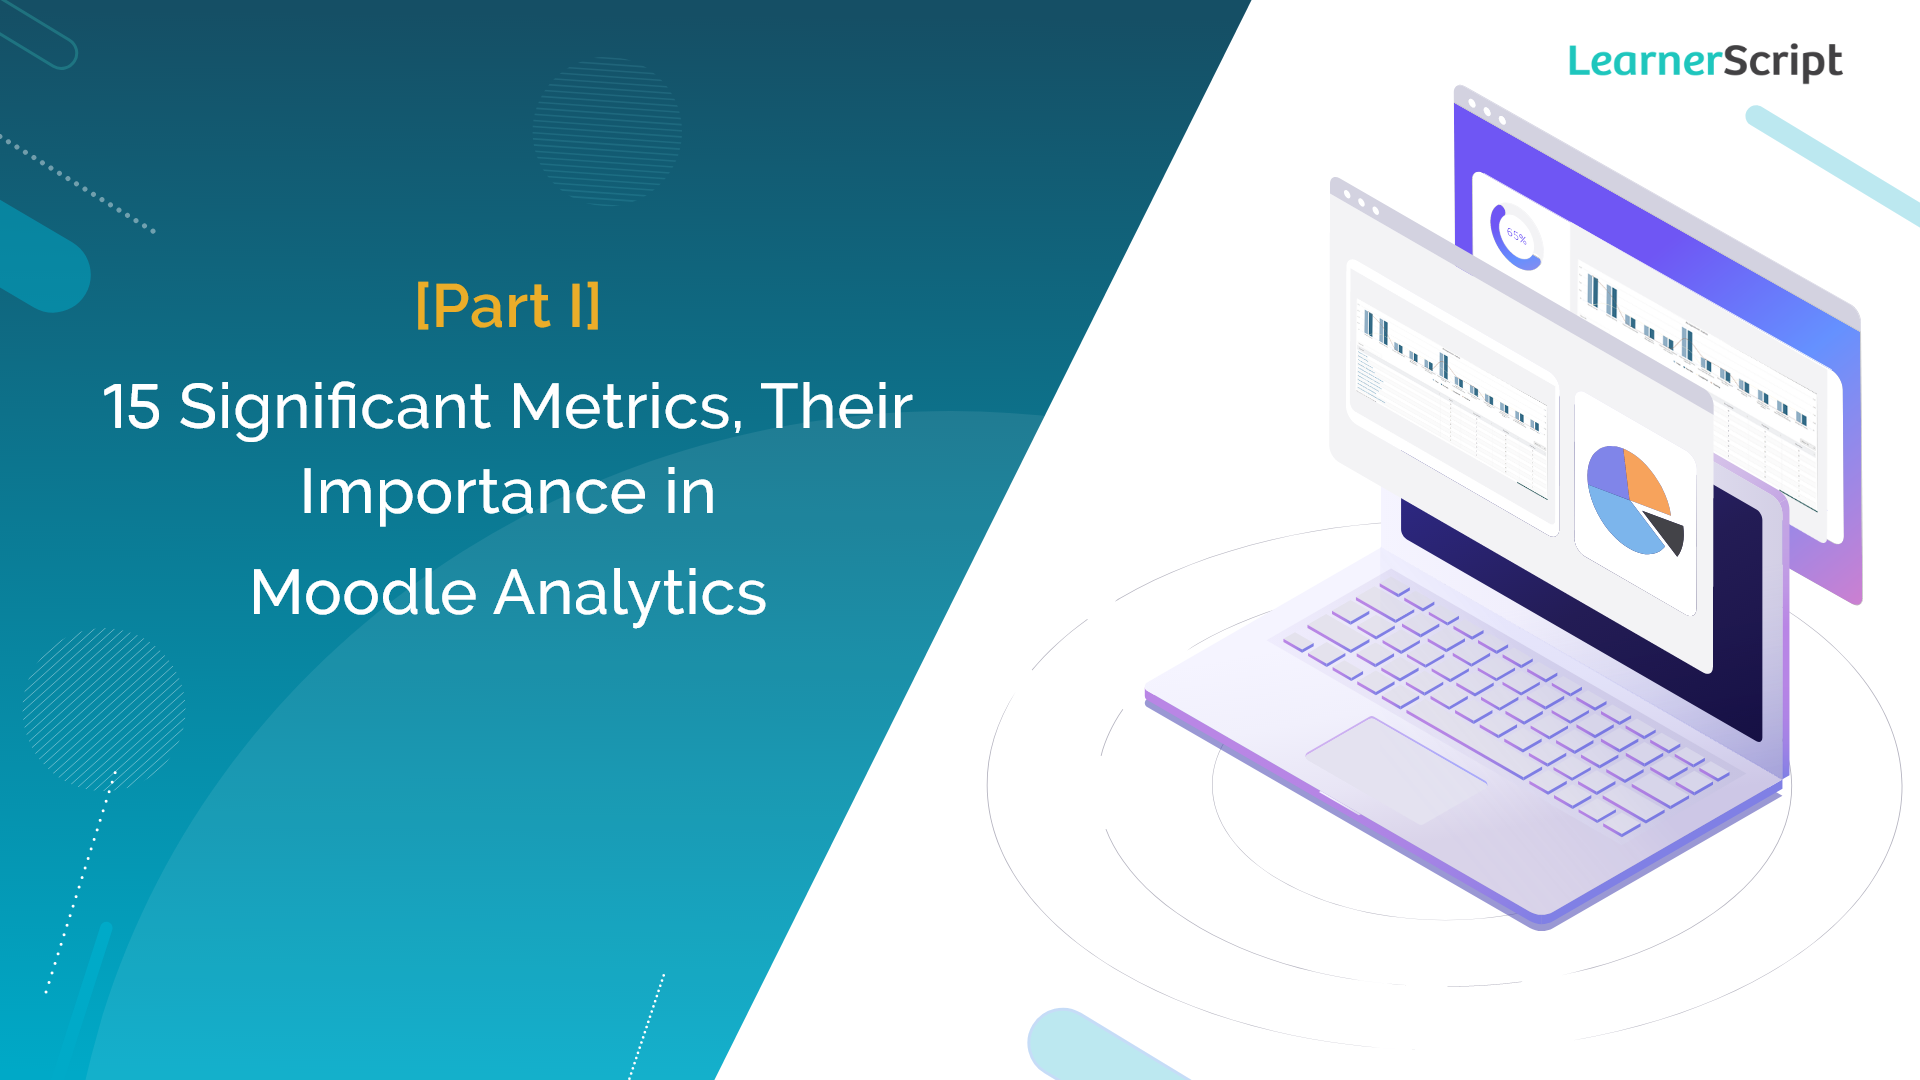 15 Significant Metrics, Their Importance in Moodle Analytics